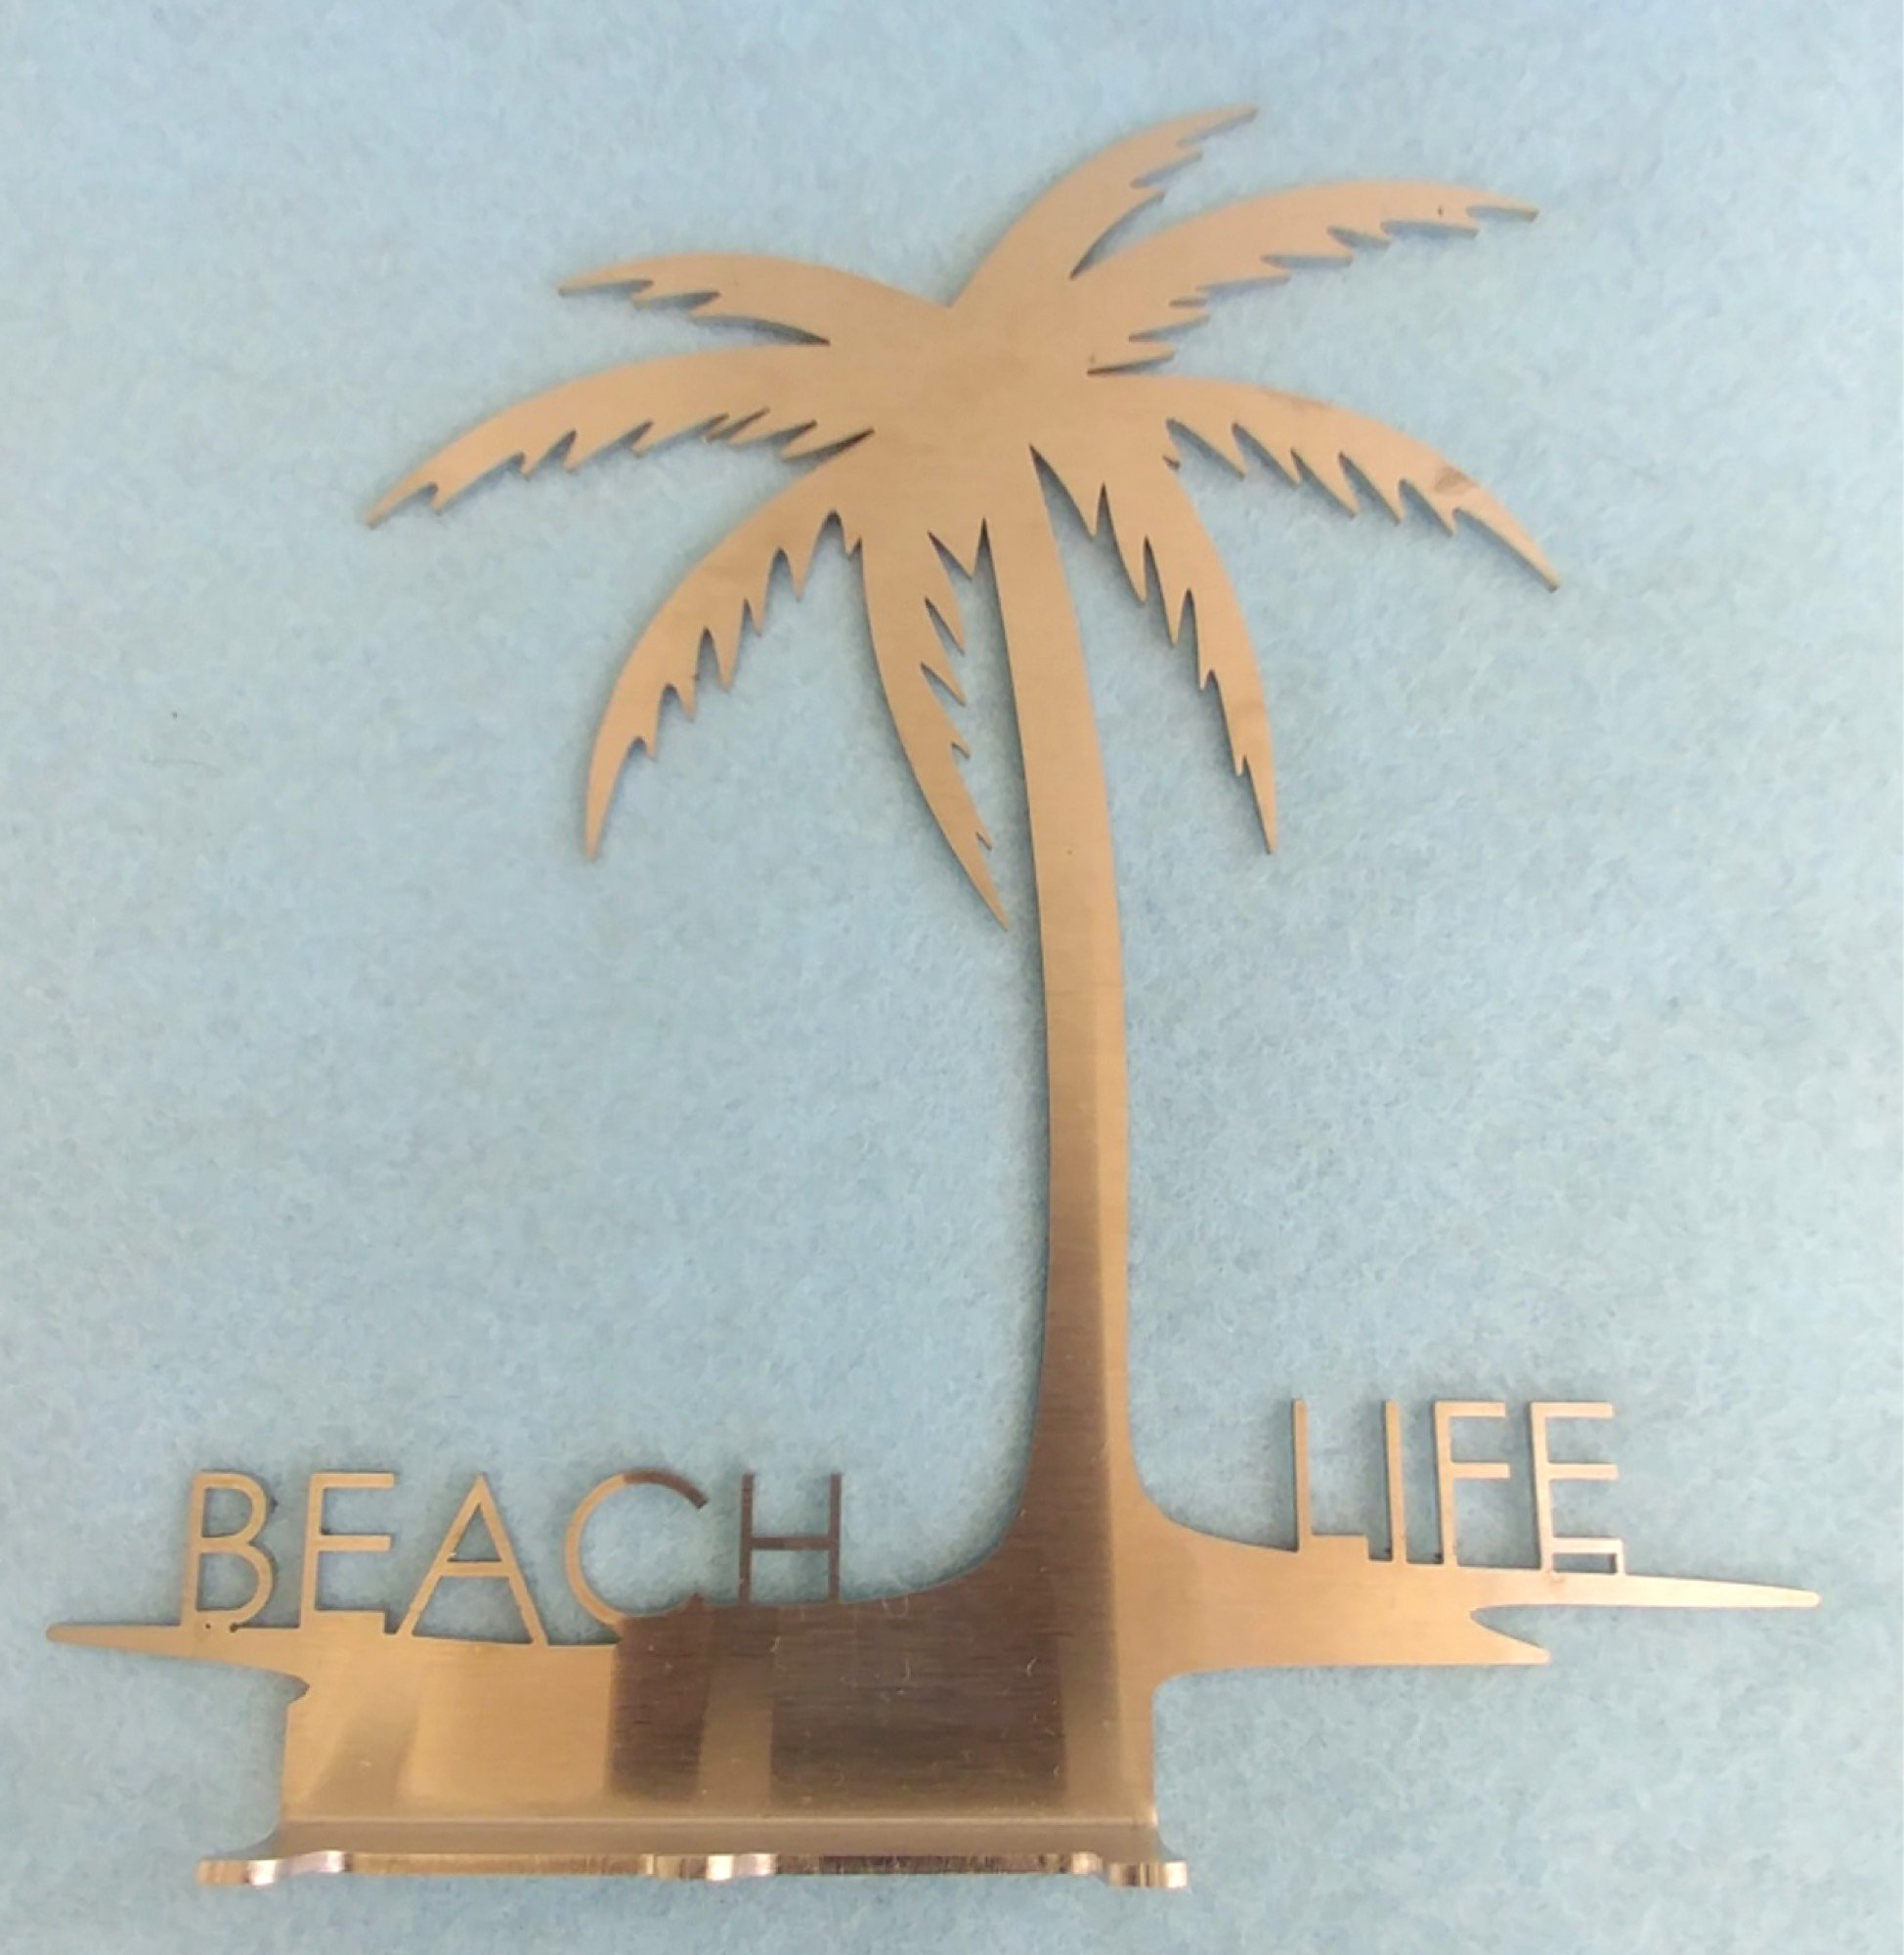 Unique Stainless Steel Key Rack holds spare keys, fobs, remotes: Beach Life with Palm Tree